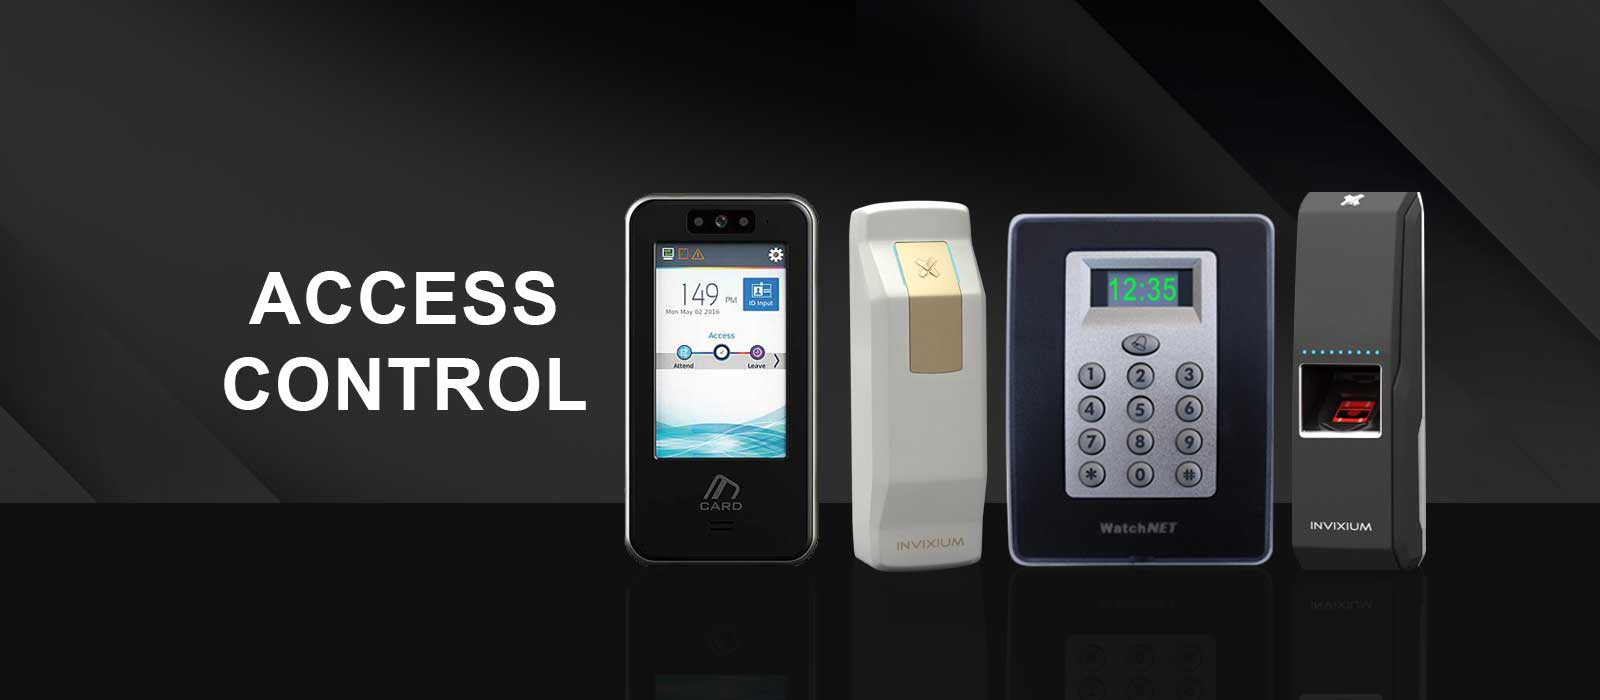 redpi systek access control services, security, authentication, system